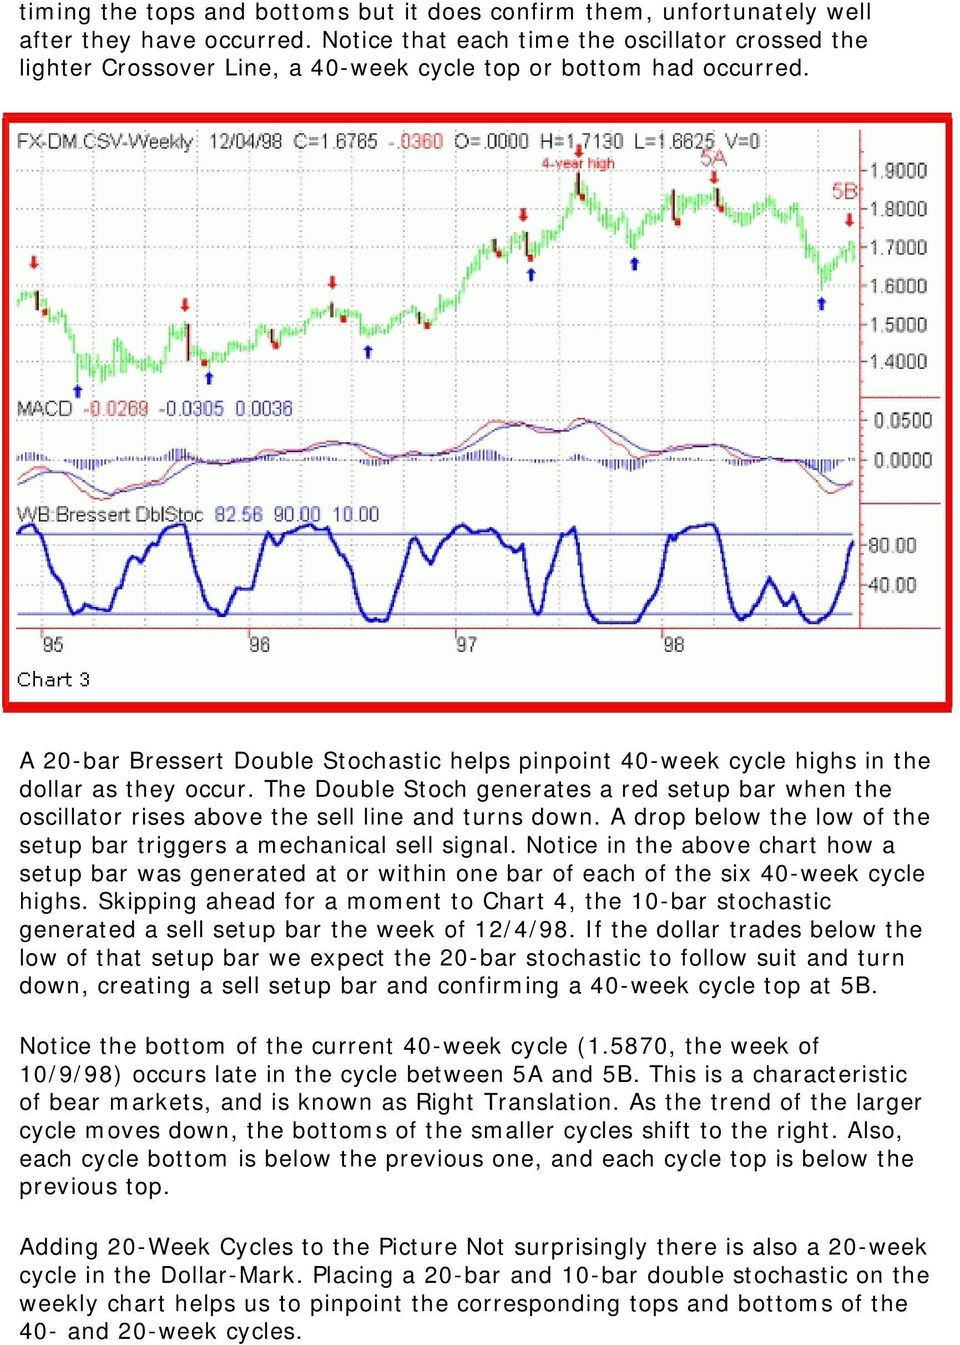 A 20-bar Bressert Double Stochastic helps pinpoint 40-week cycle highs in the dollar as they occur.